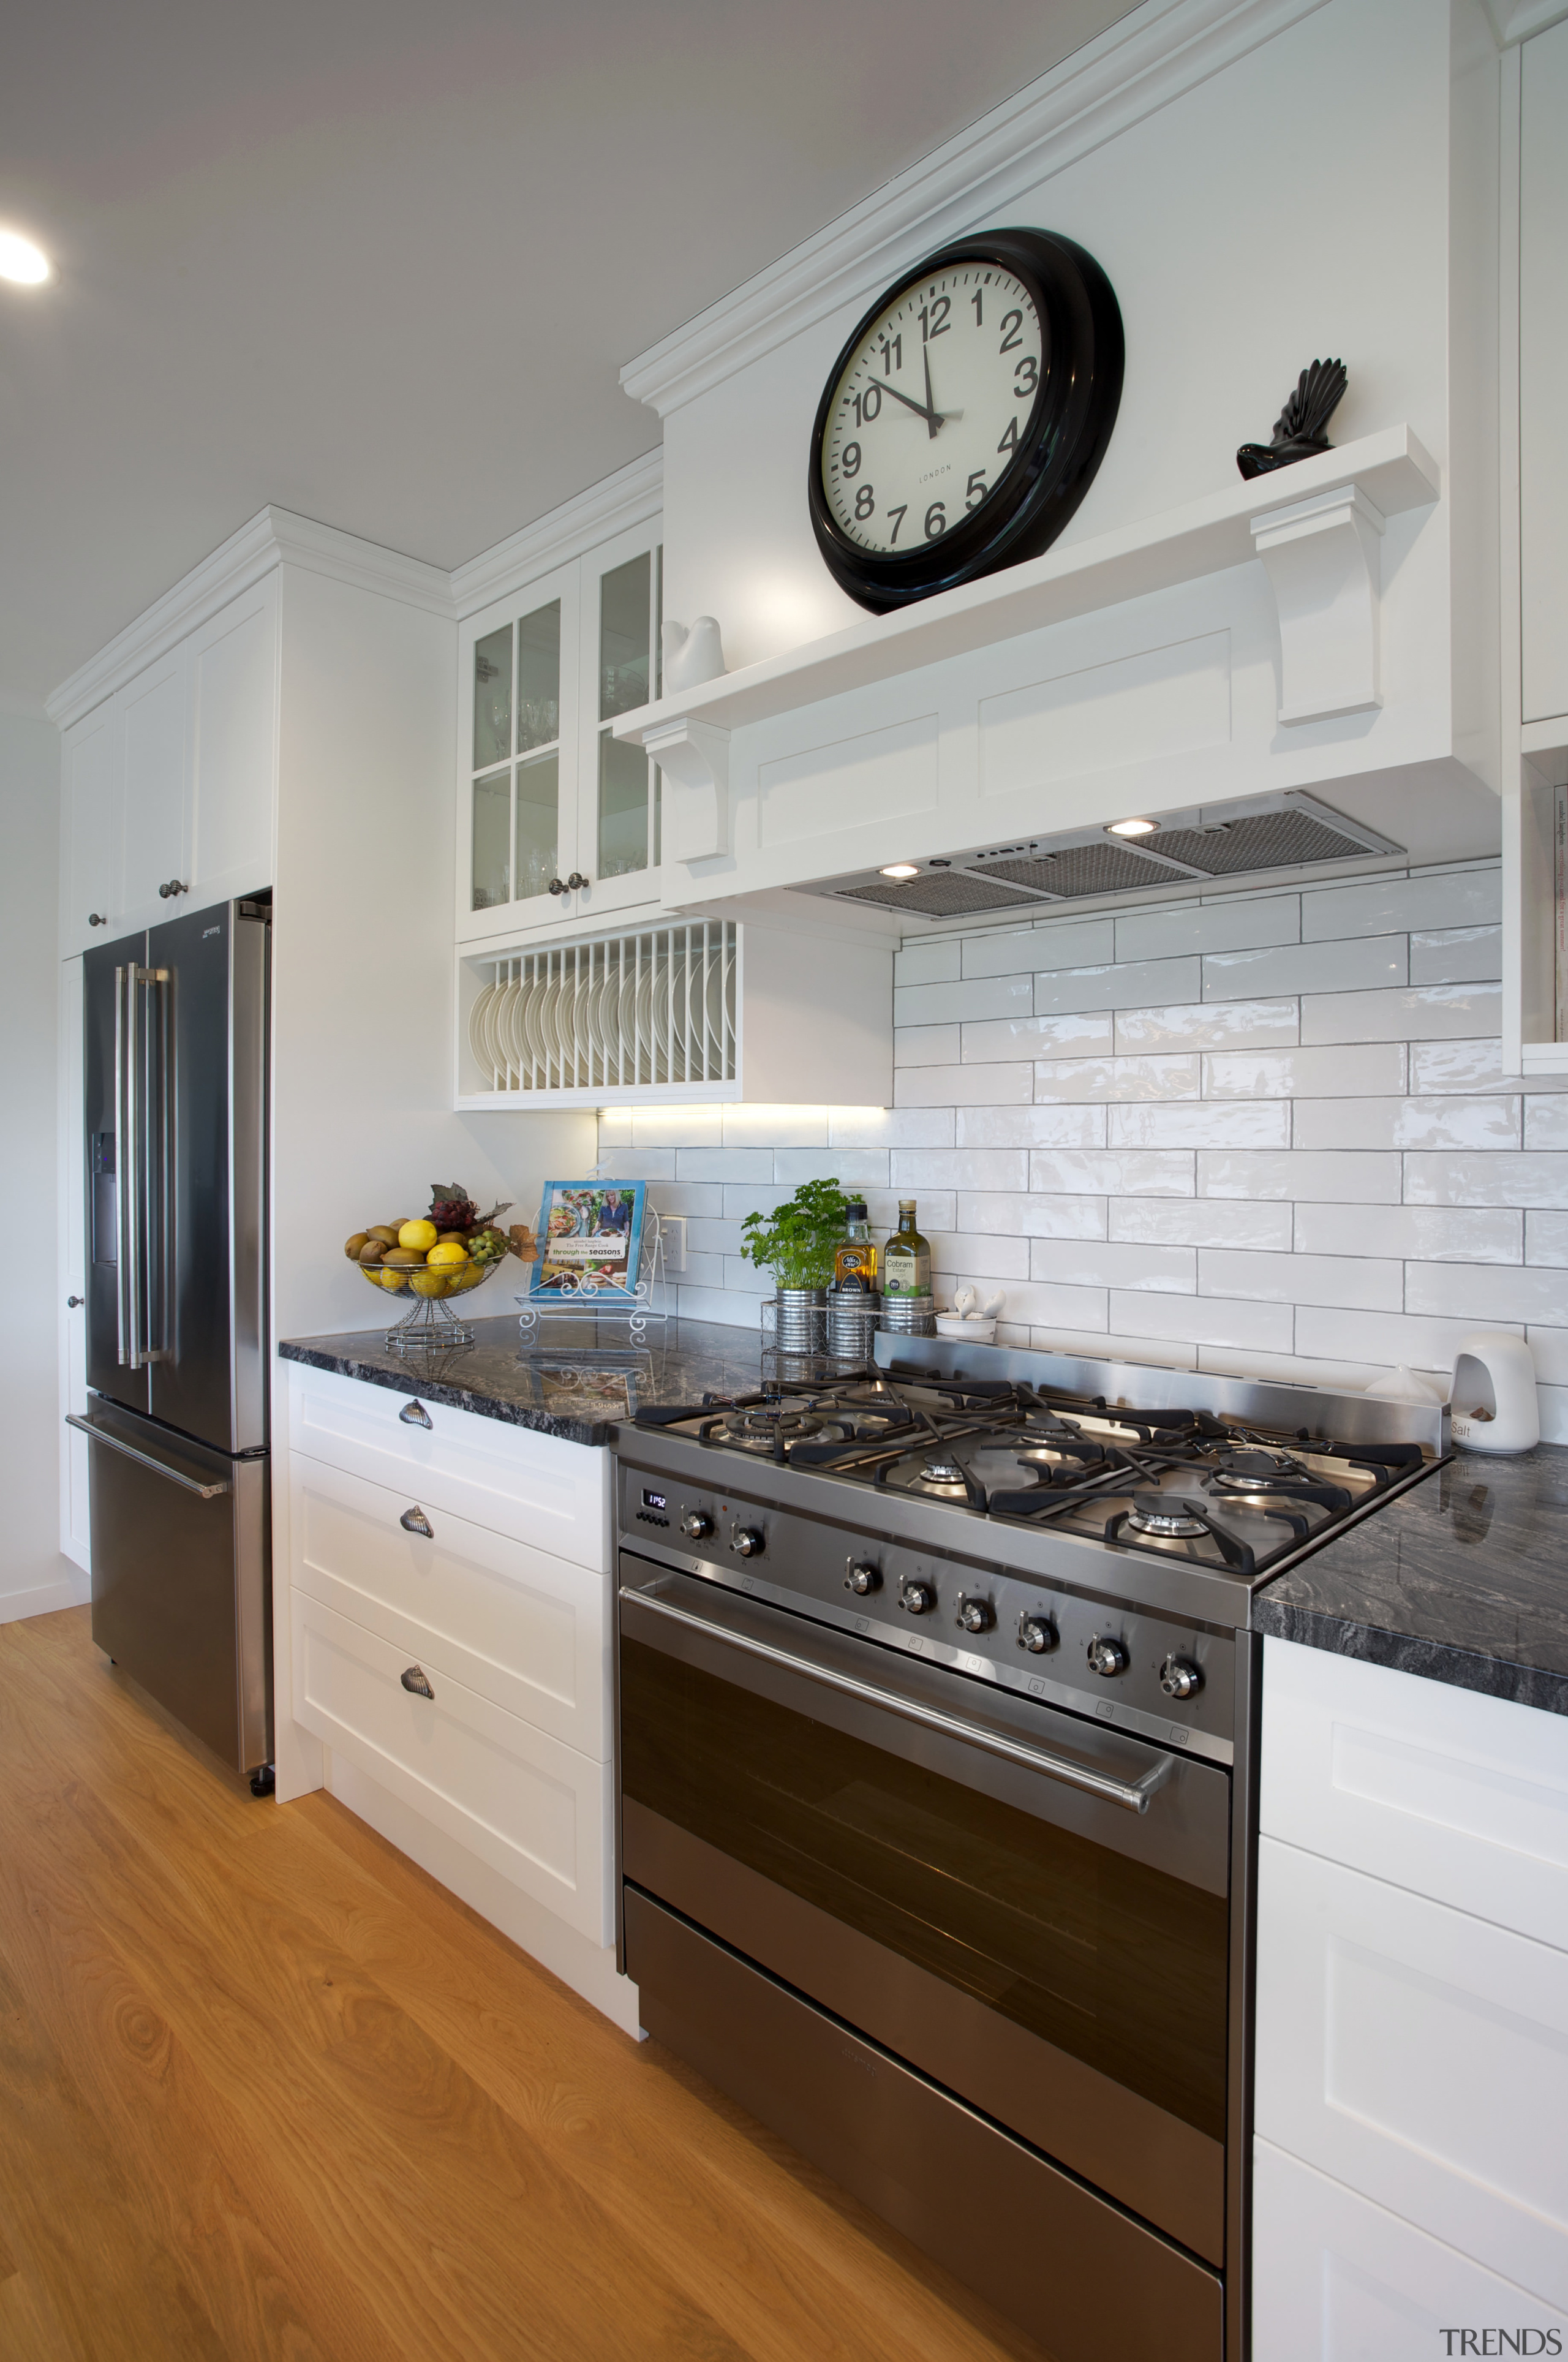 Open, breezy and welcoming, this kitchen designed by cabinetry, countertop, cuisine classique, floor, home, home appliance, interior design, kitchen, kitchen appliance, kitchen stove, room, gray